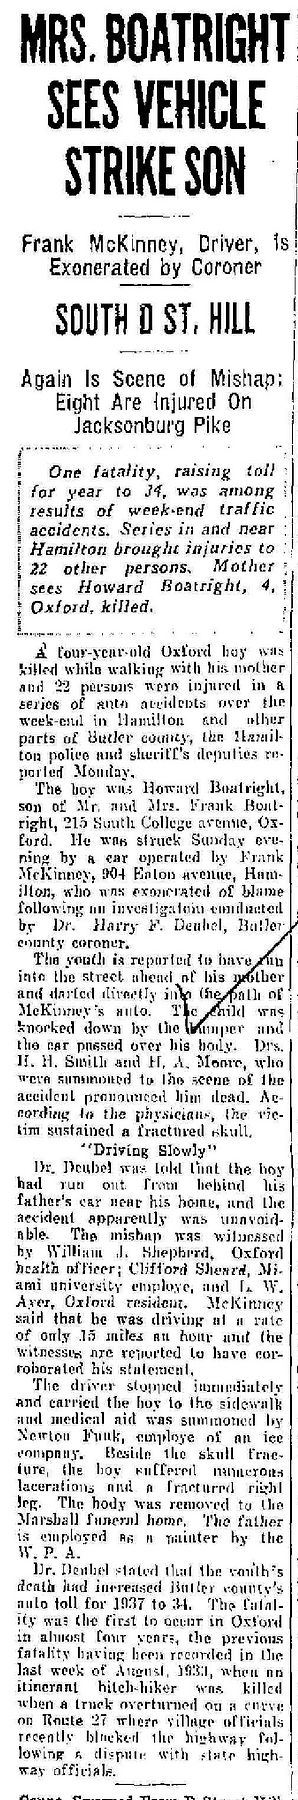 Orval Howard Boatright Newspaper Article: